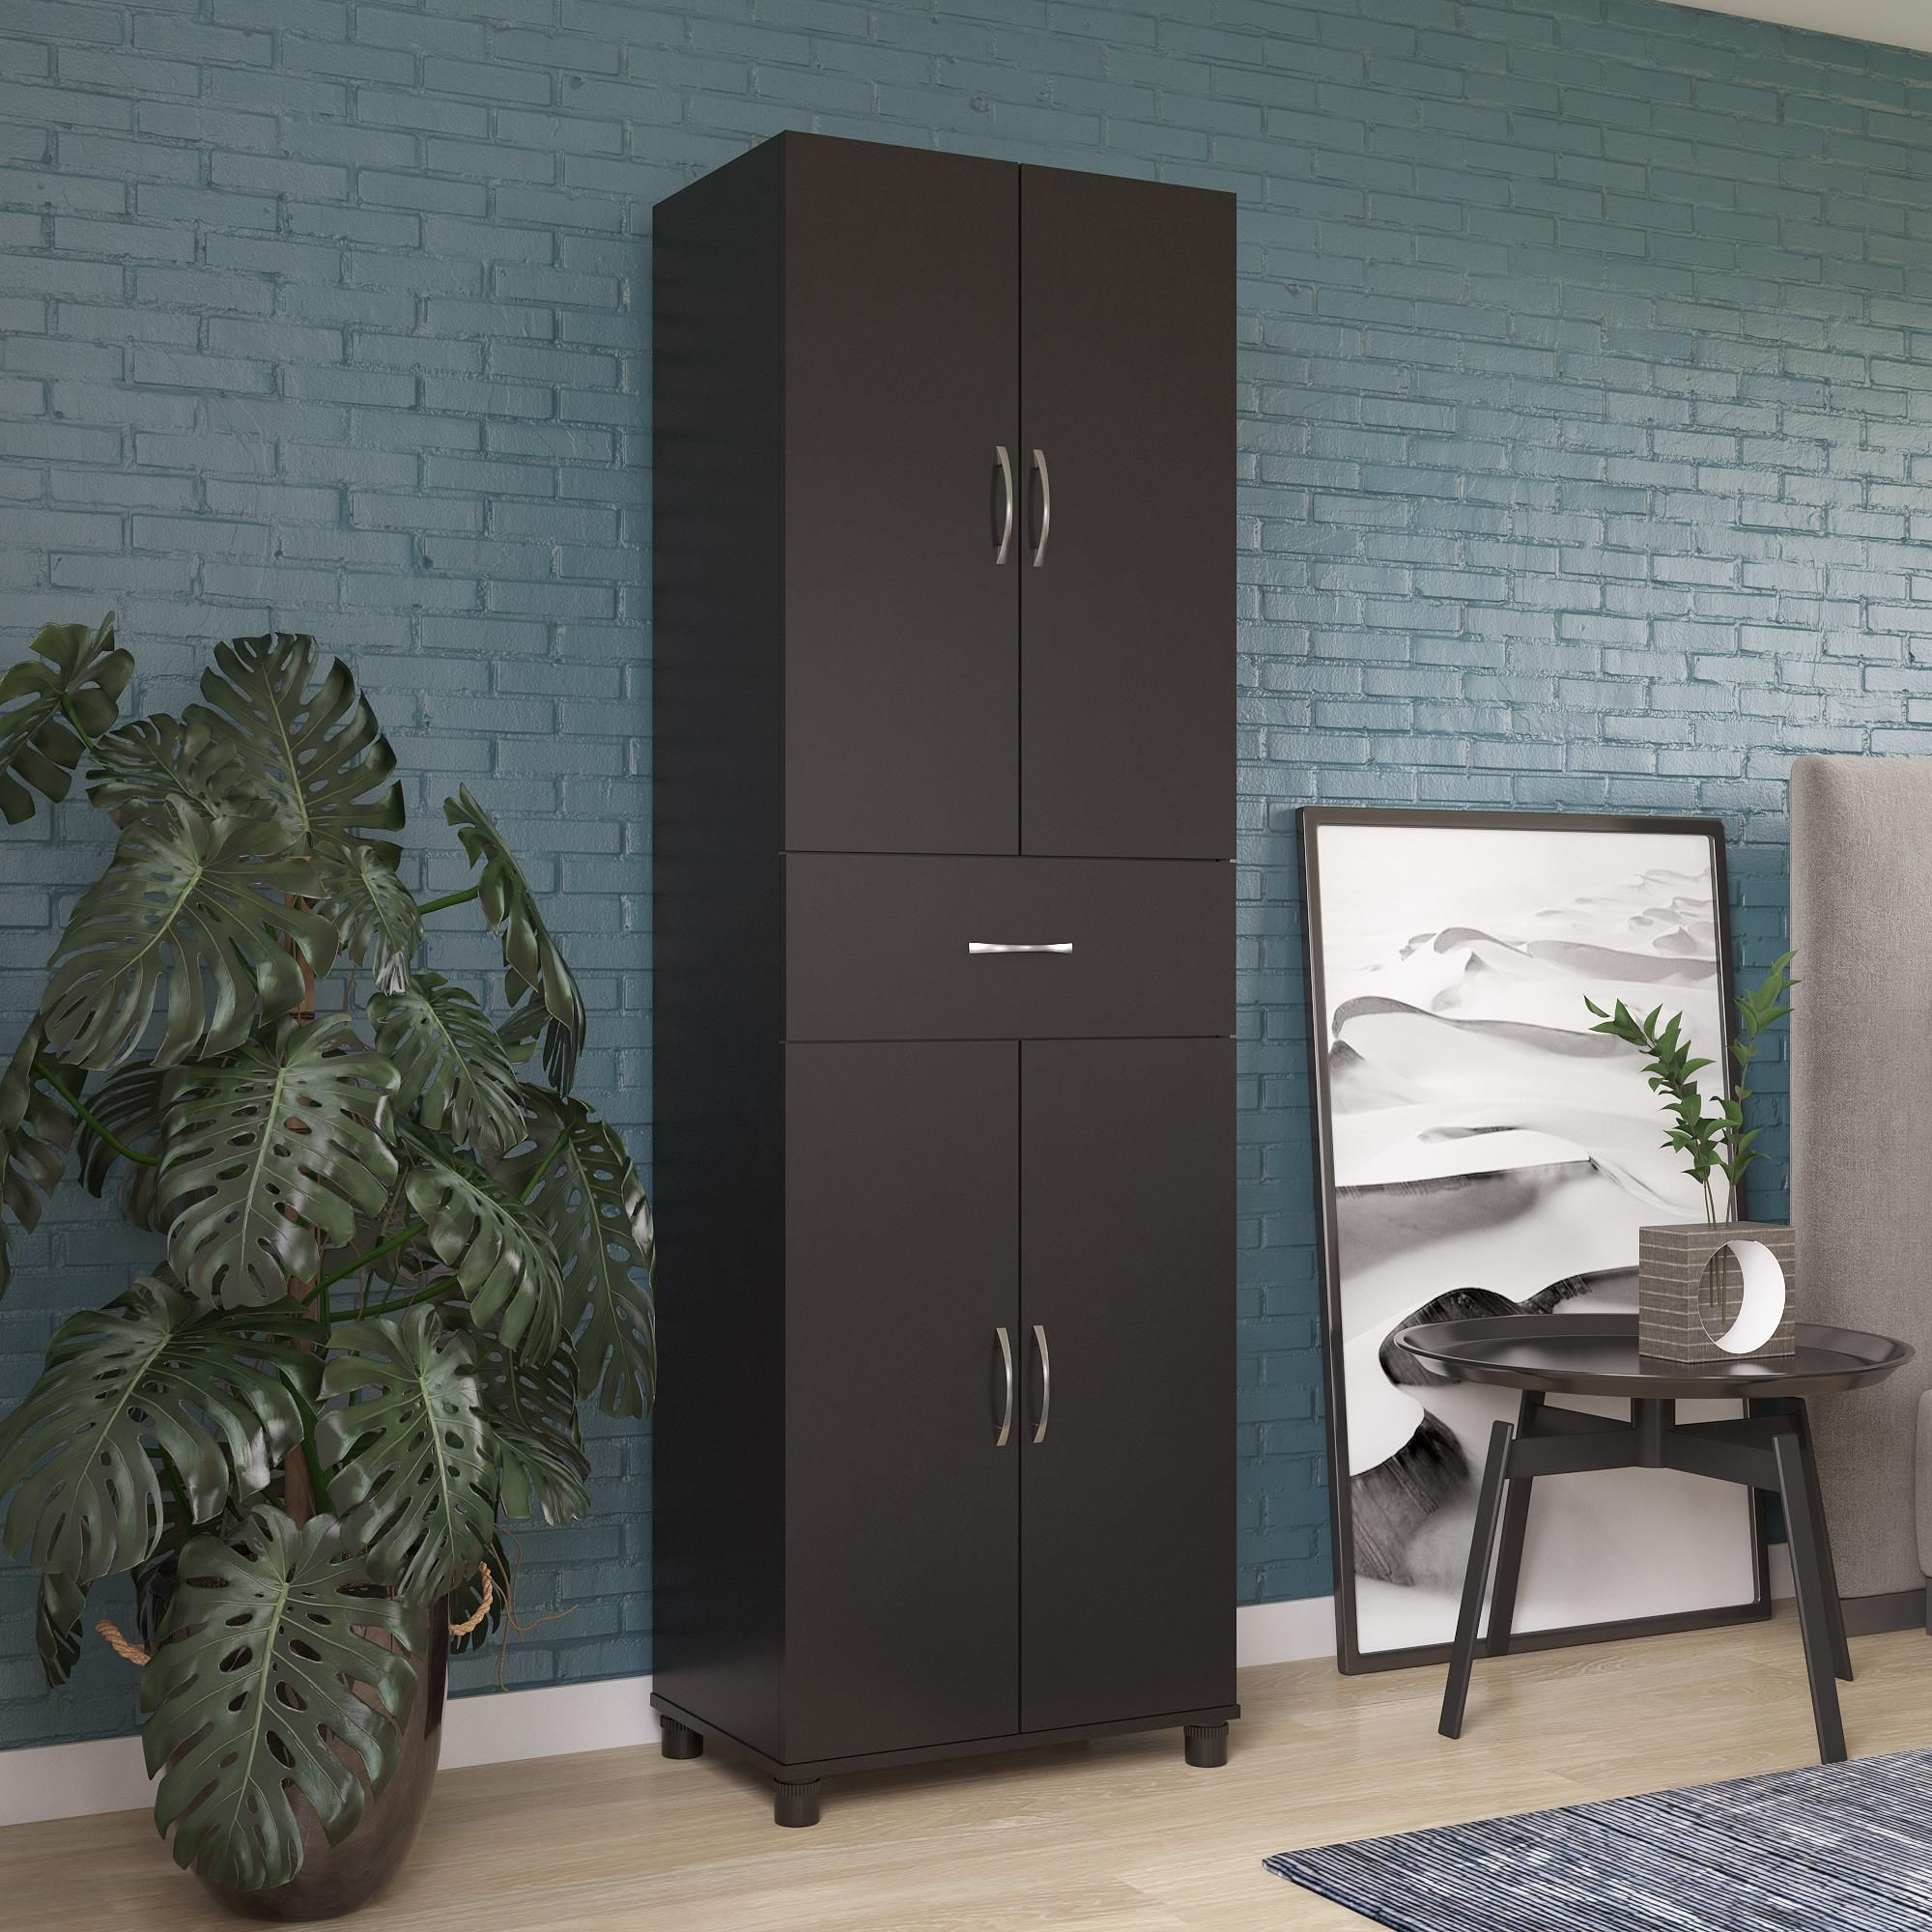 Realrooms Basin Storage Cabinet With Drawer Kitchen And Pantry Organizer Black Walmart Com In 2020 Storage Cabinet With Drawers Pantry Organization Storage